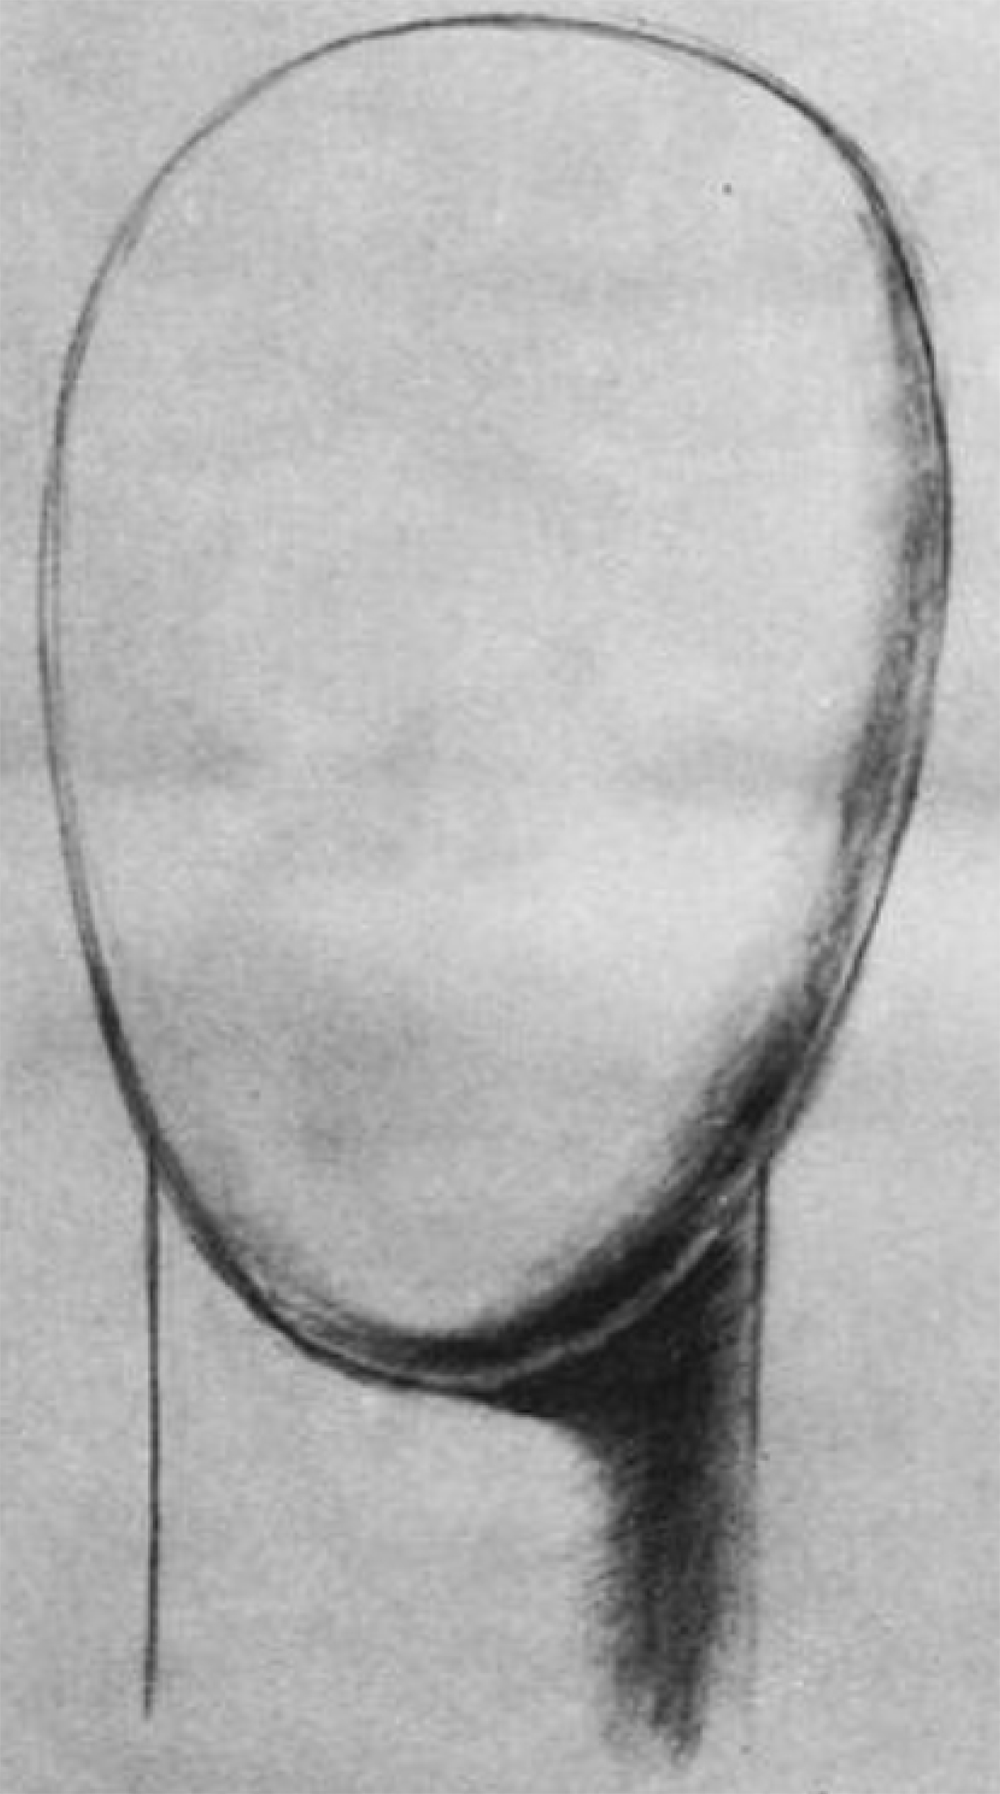 Draw the head out as an oval.